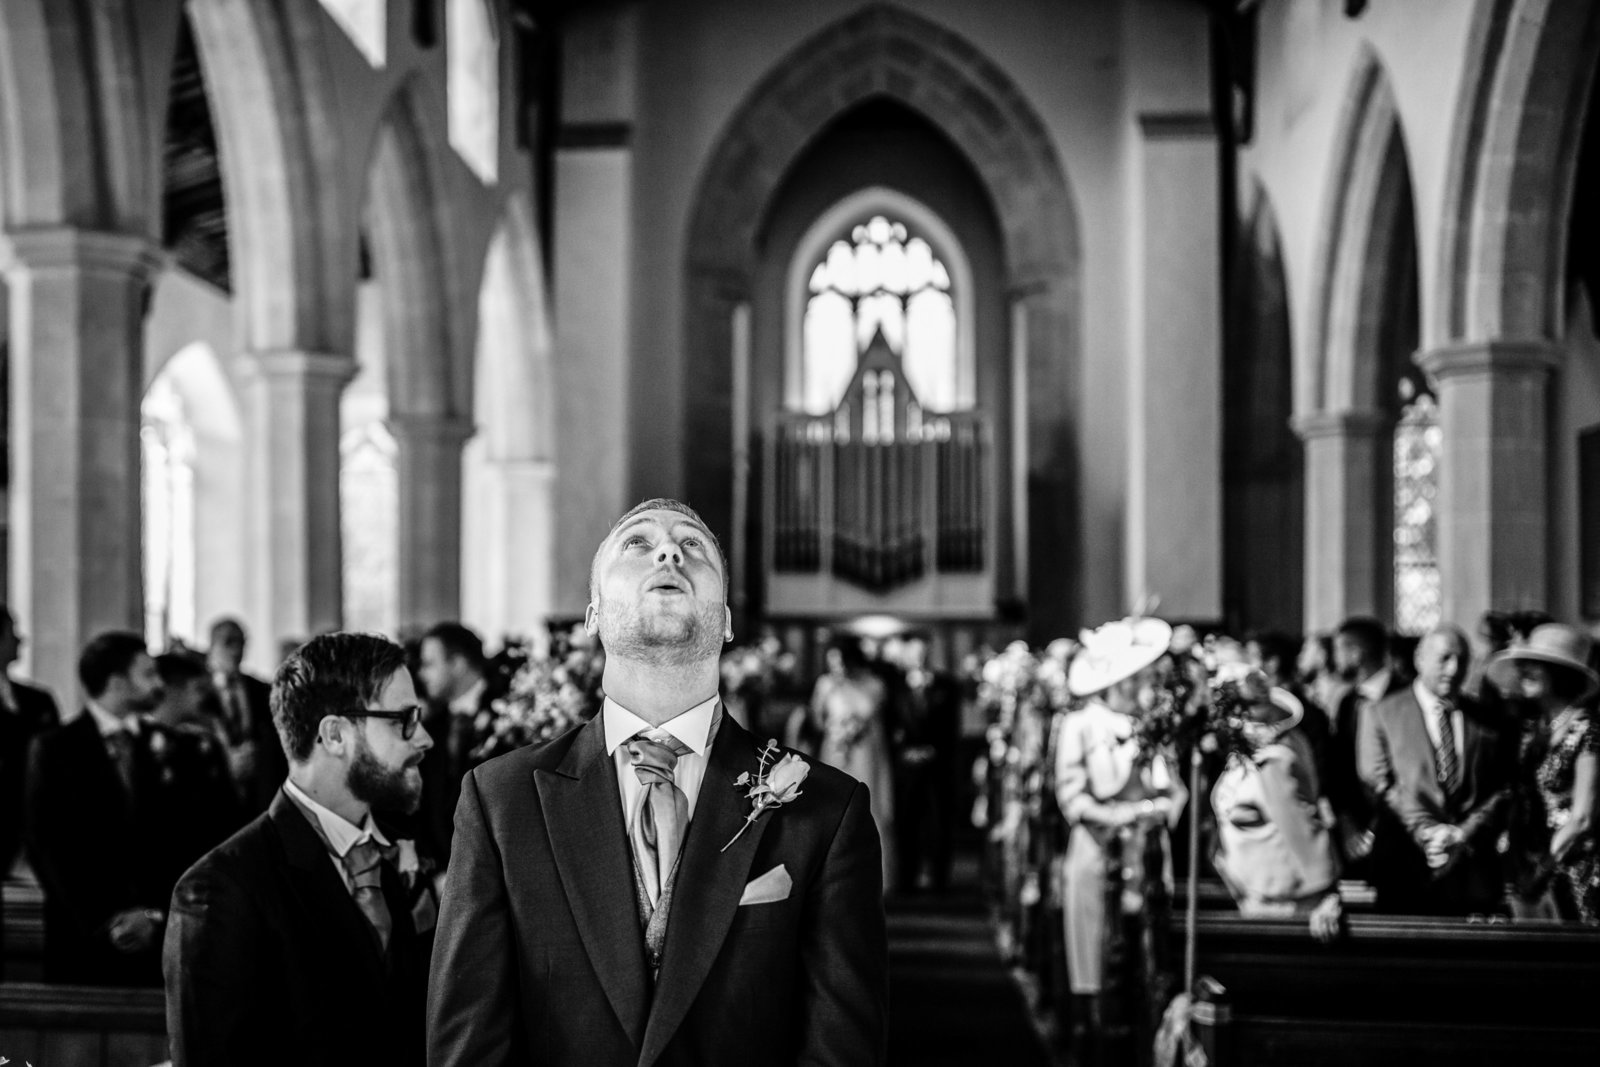 Nervous Groom waits at altar for Bride to arrive, he looks up to ceiling nervously in a traditional Norfolk church.